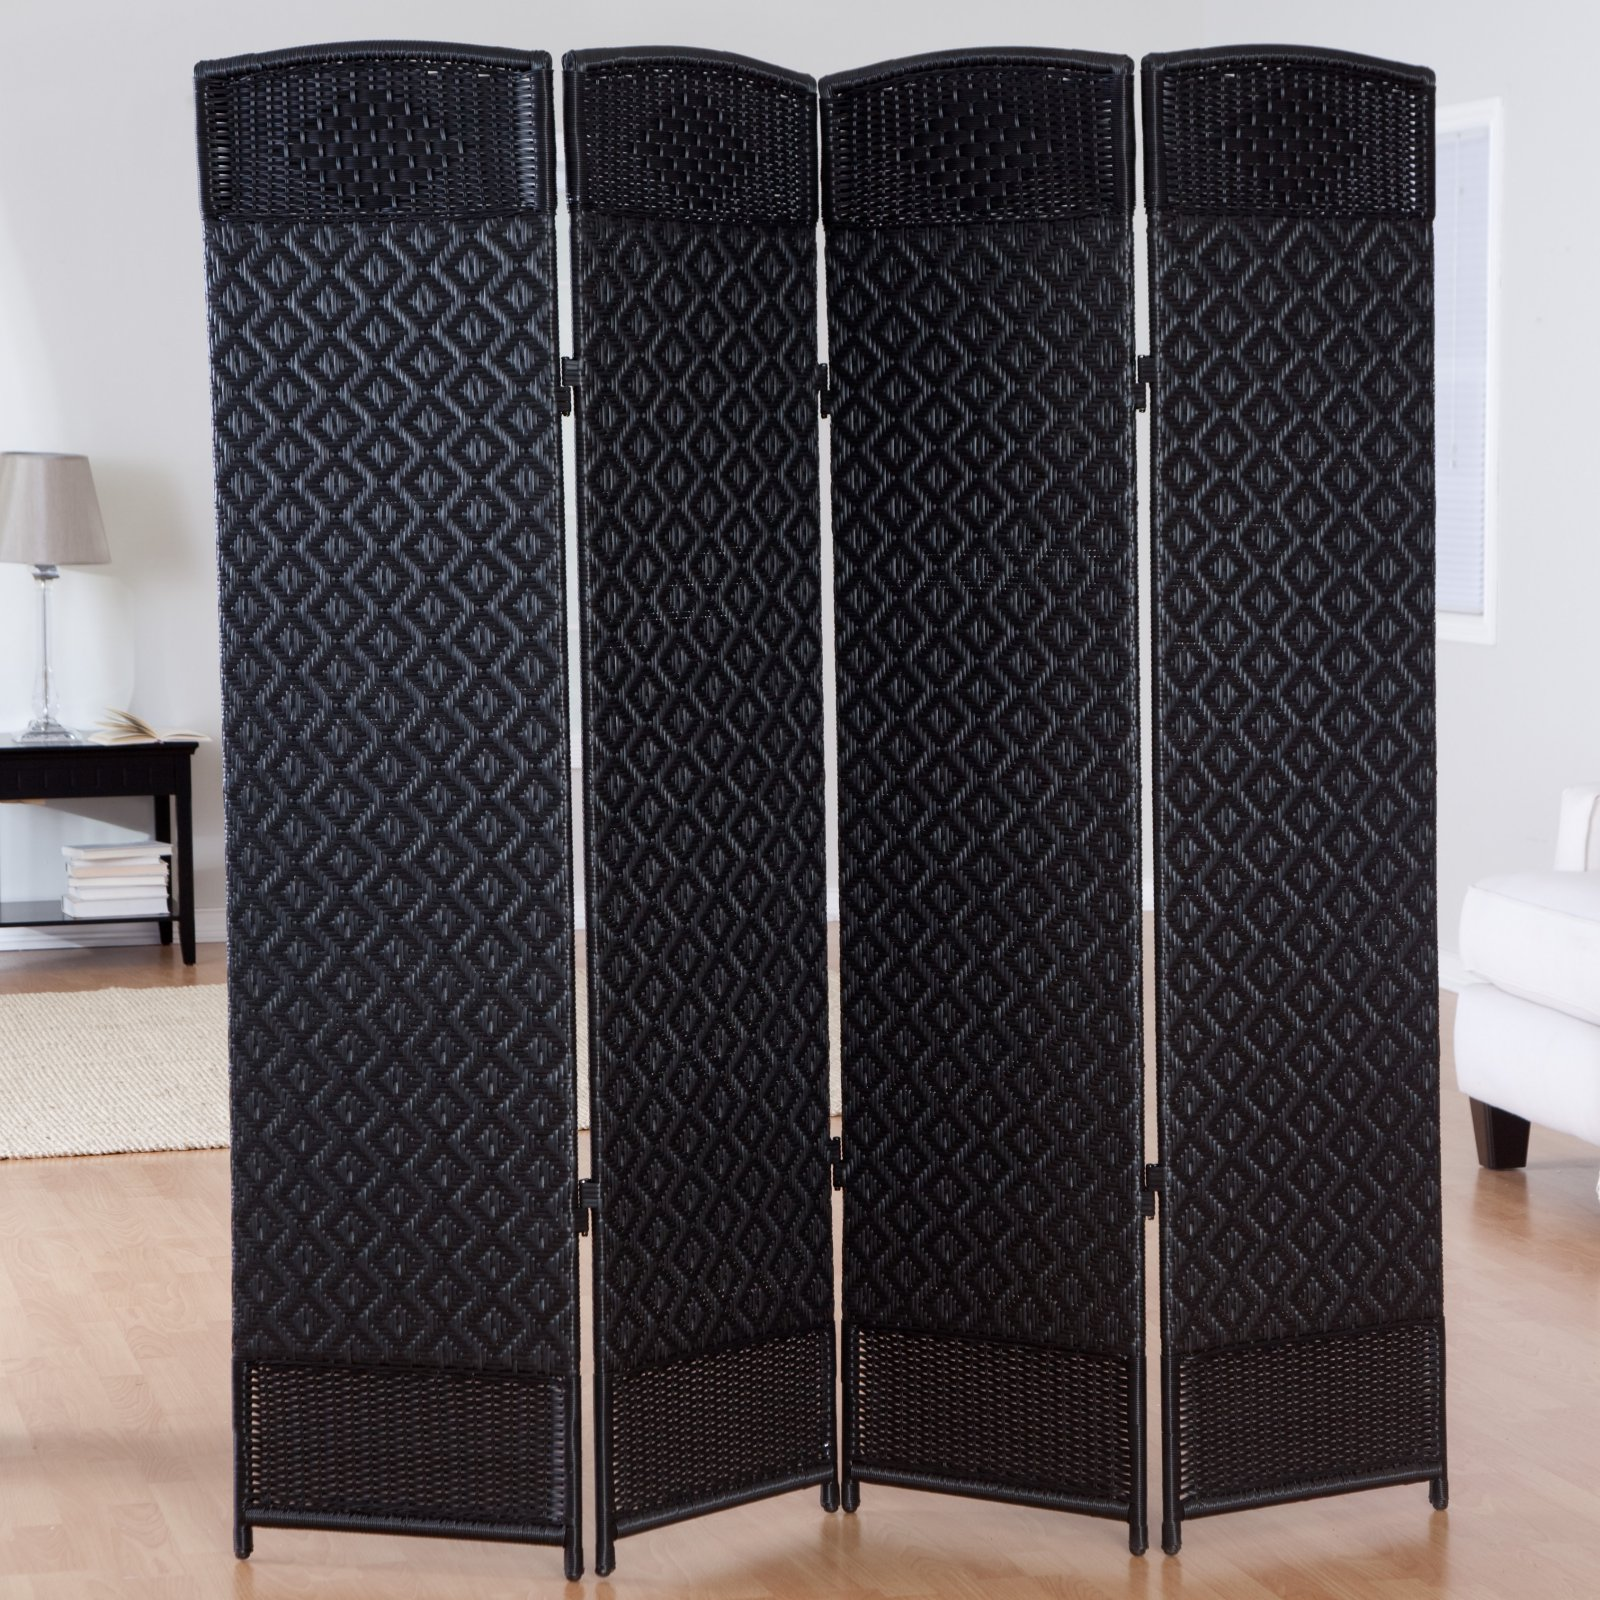 Outdoor/Indoor Woven Resin 4 Panel Room Divider